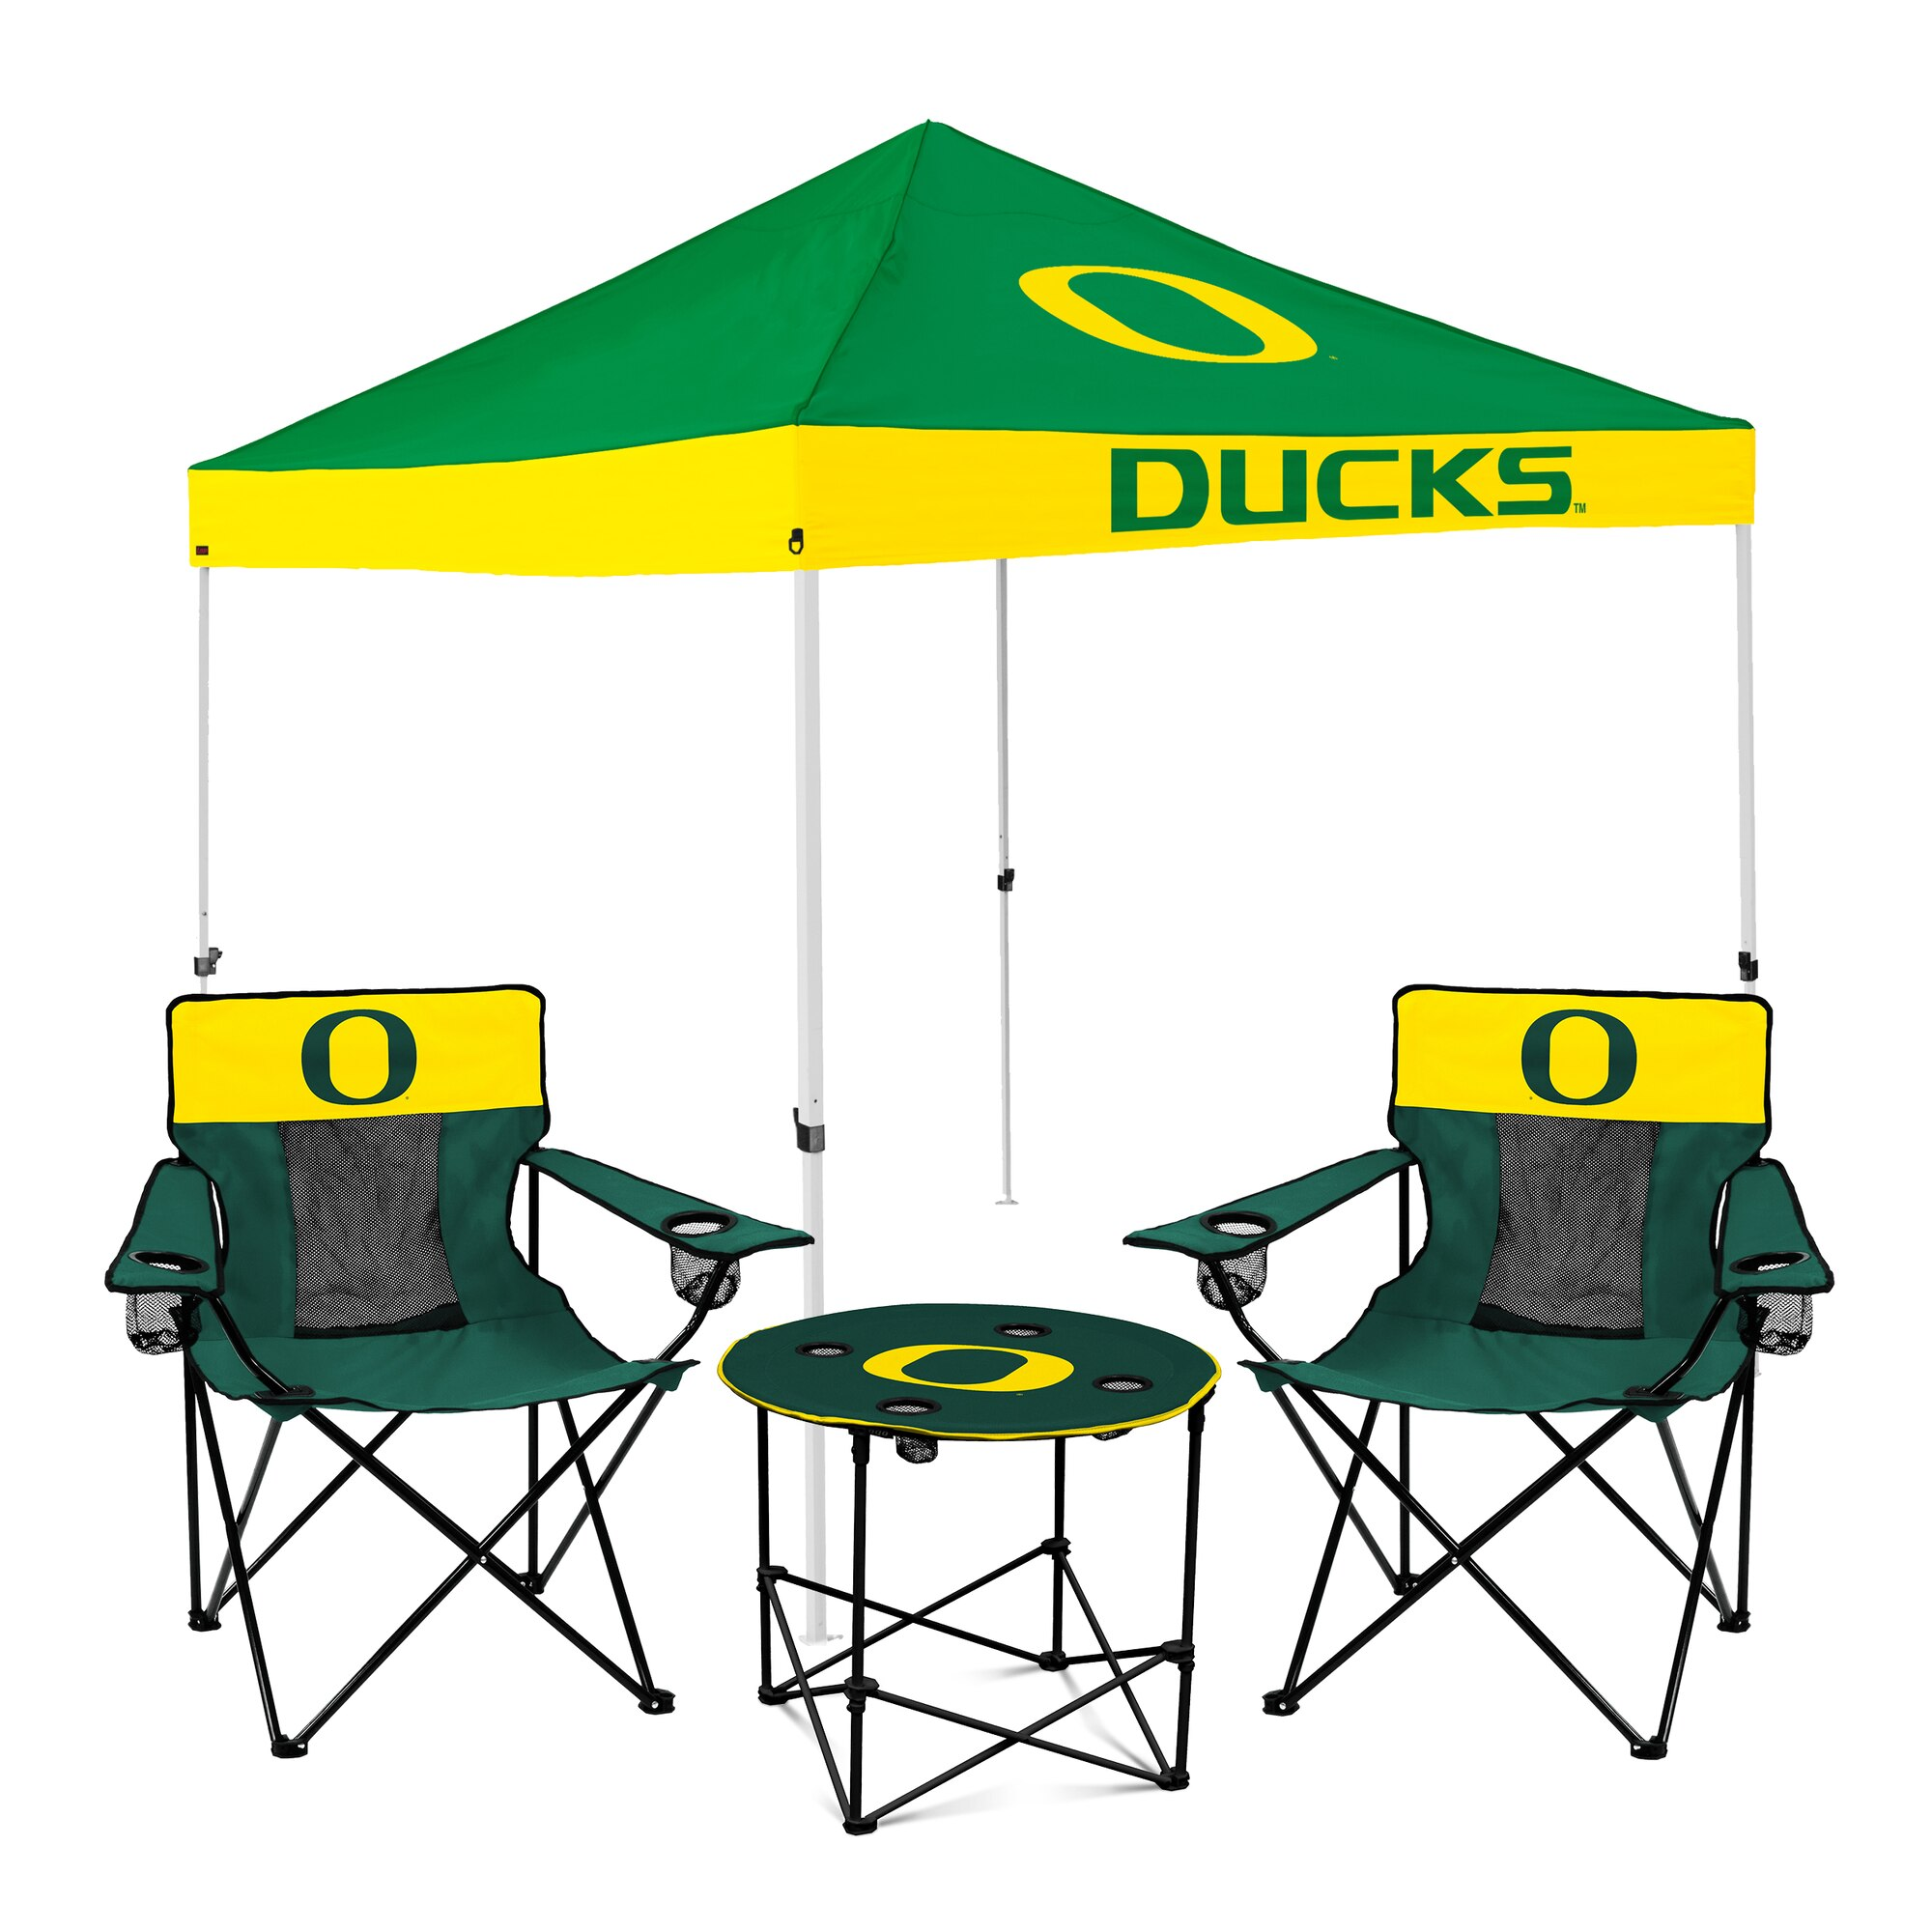 Oregon Ducks Tailgate Canopy Tent, Table, & Chairs Set